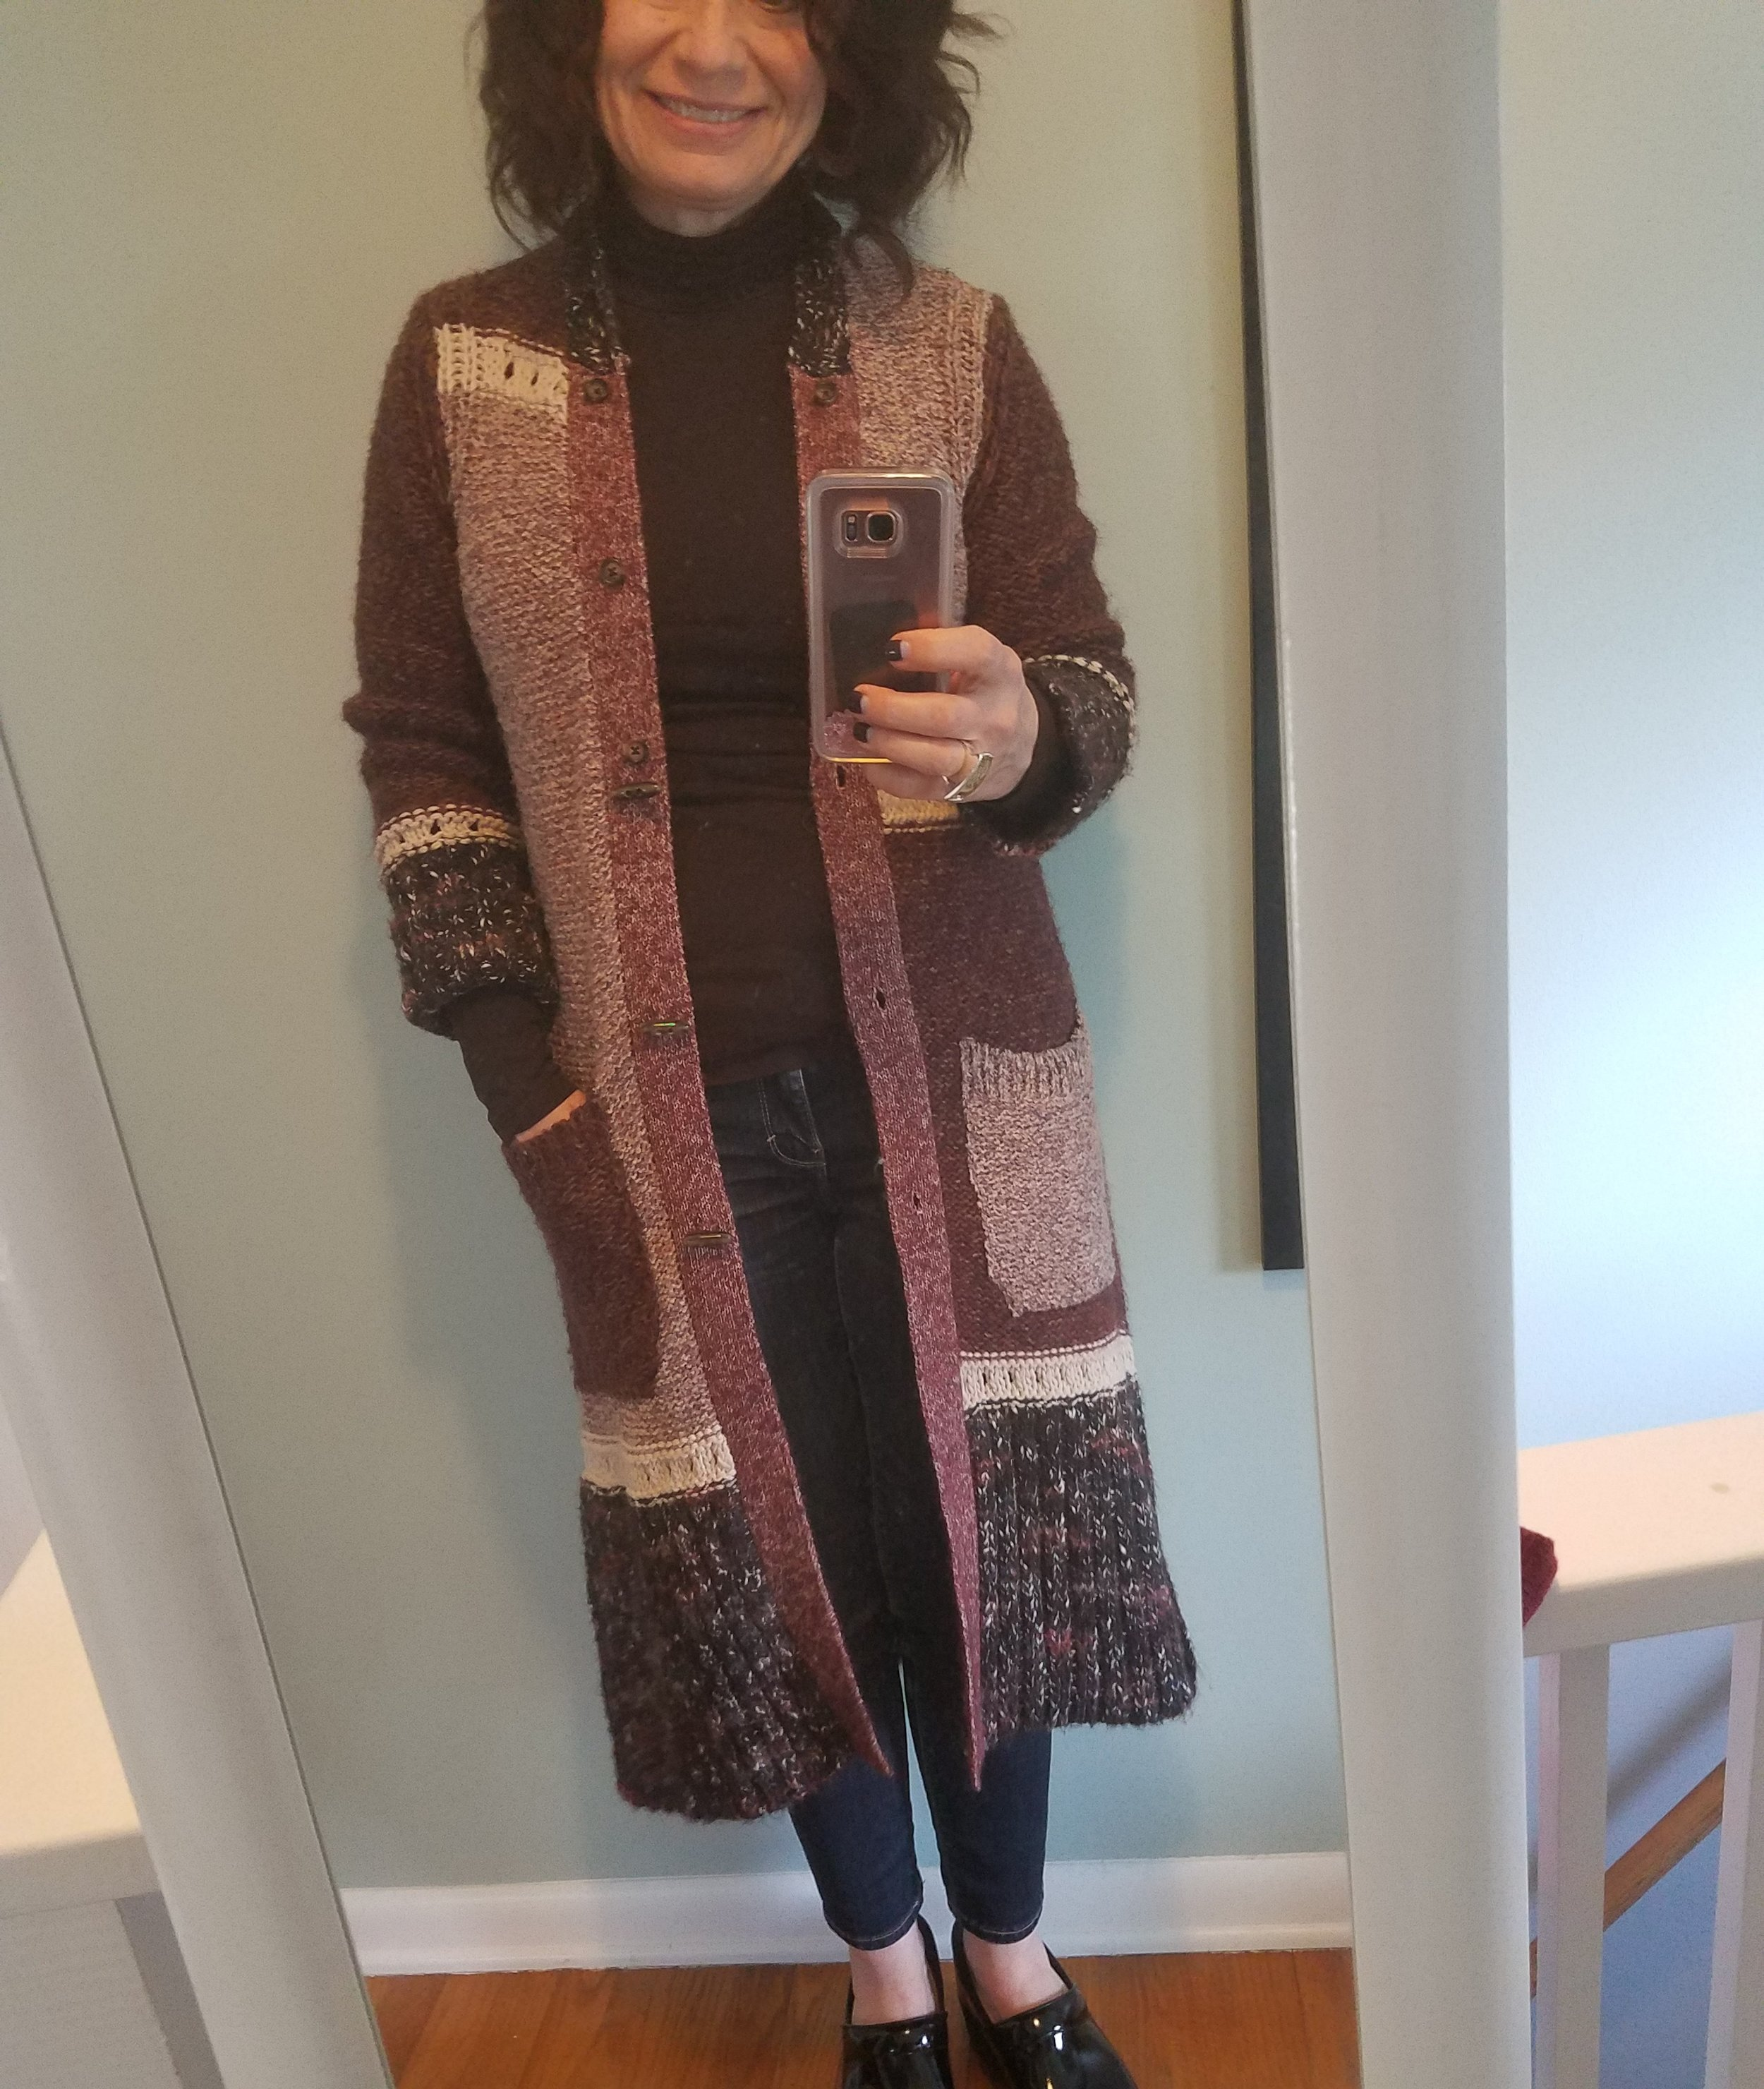 Long Cardi - This beautiful cardigan was a gift from the Mr. last year for Christmas.  It has a removable fur collar that chose not to wear on this day.  The muted colors in this sweater make it easy to wear with almost anything.  I have a turtleneck and distressed jeans on with my danskos and I was cozy and comfortable.